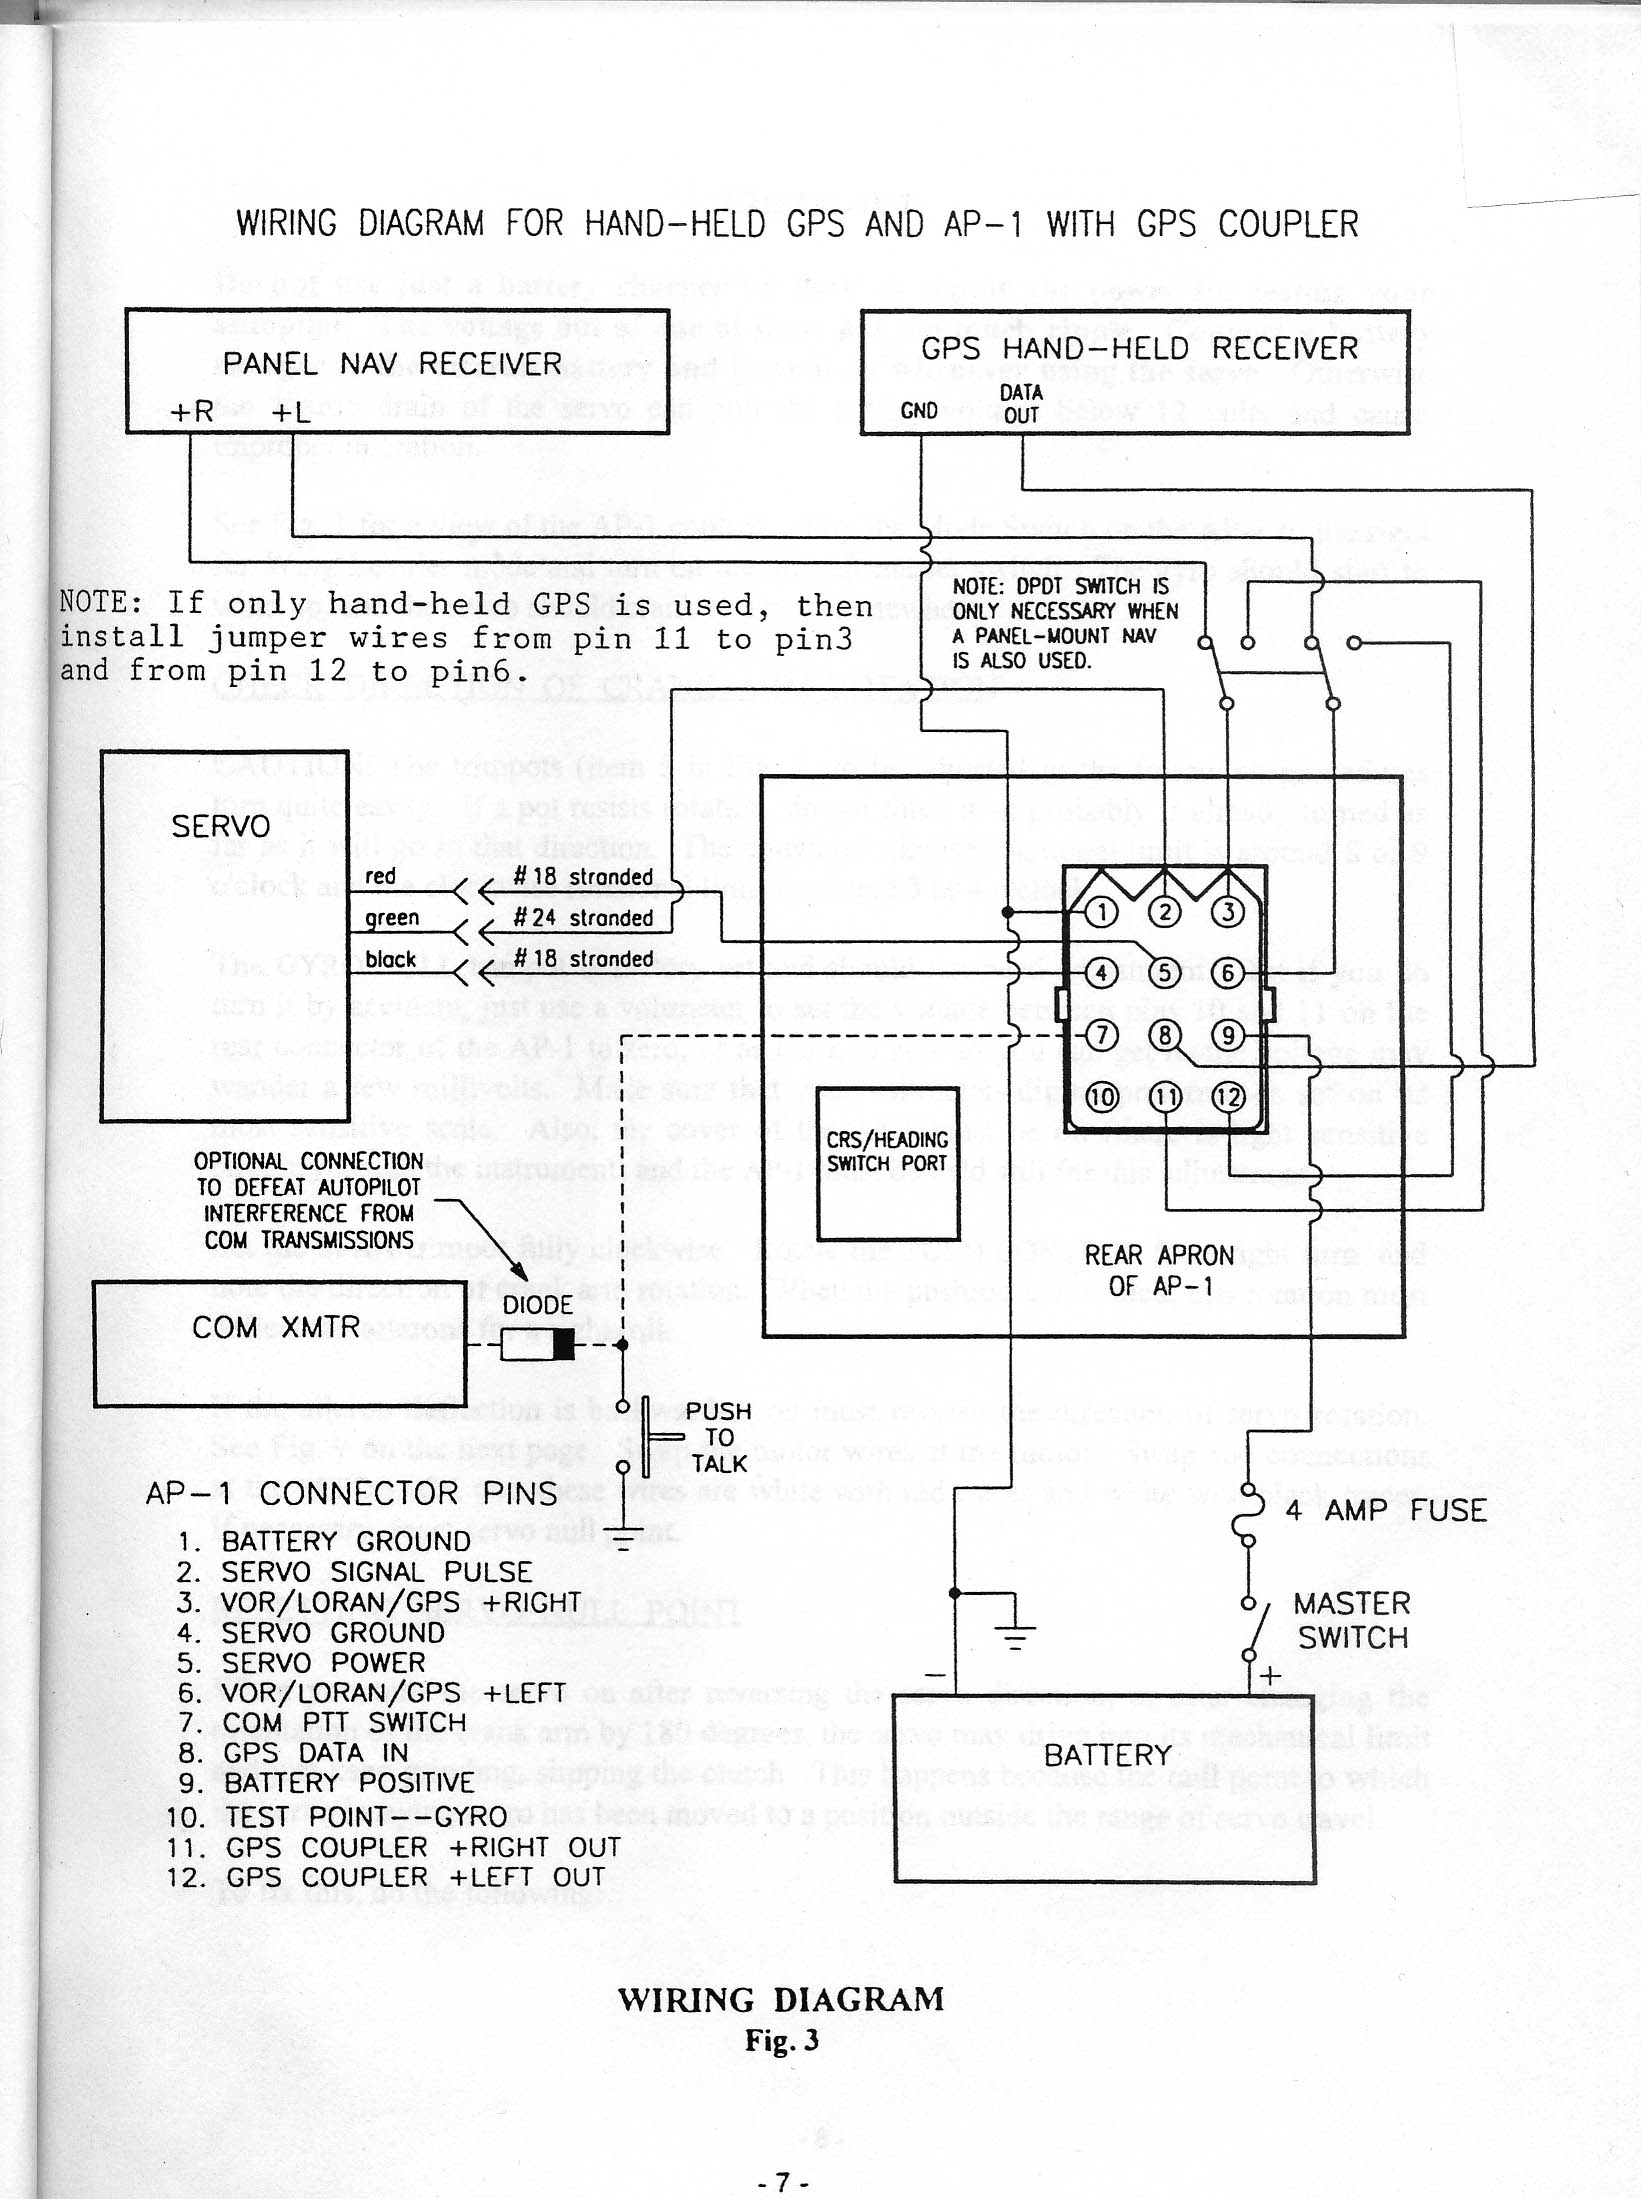 Sigtronics Spa 400 Wiring Diagram Solutions Instructions Wire Center